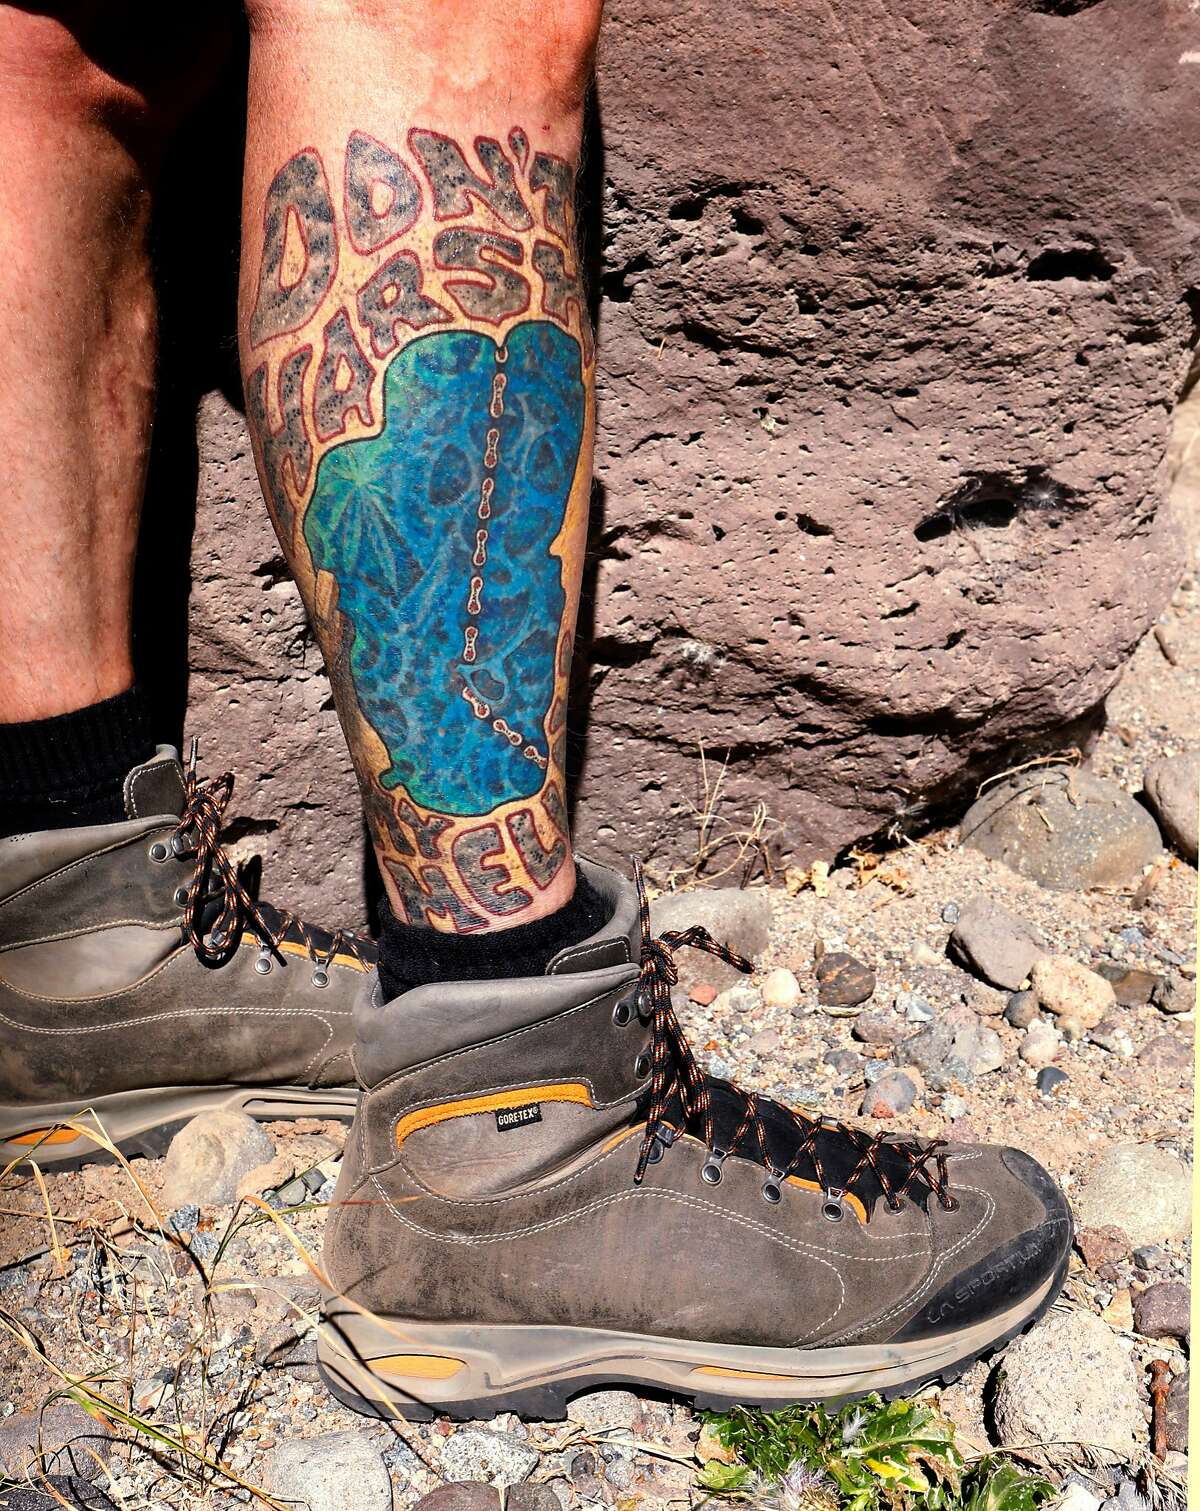 Mike Dewey of Reno, Nv. displays his Lake Tahoe tattoo, done by Mark of Truth Tattoo in Truckee, Calif., during a hike along the Tahoe-Pyramid Bikeway between Floriston and Farad, Calif., as seen on Thurs. Sept. 6, 2018.